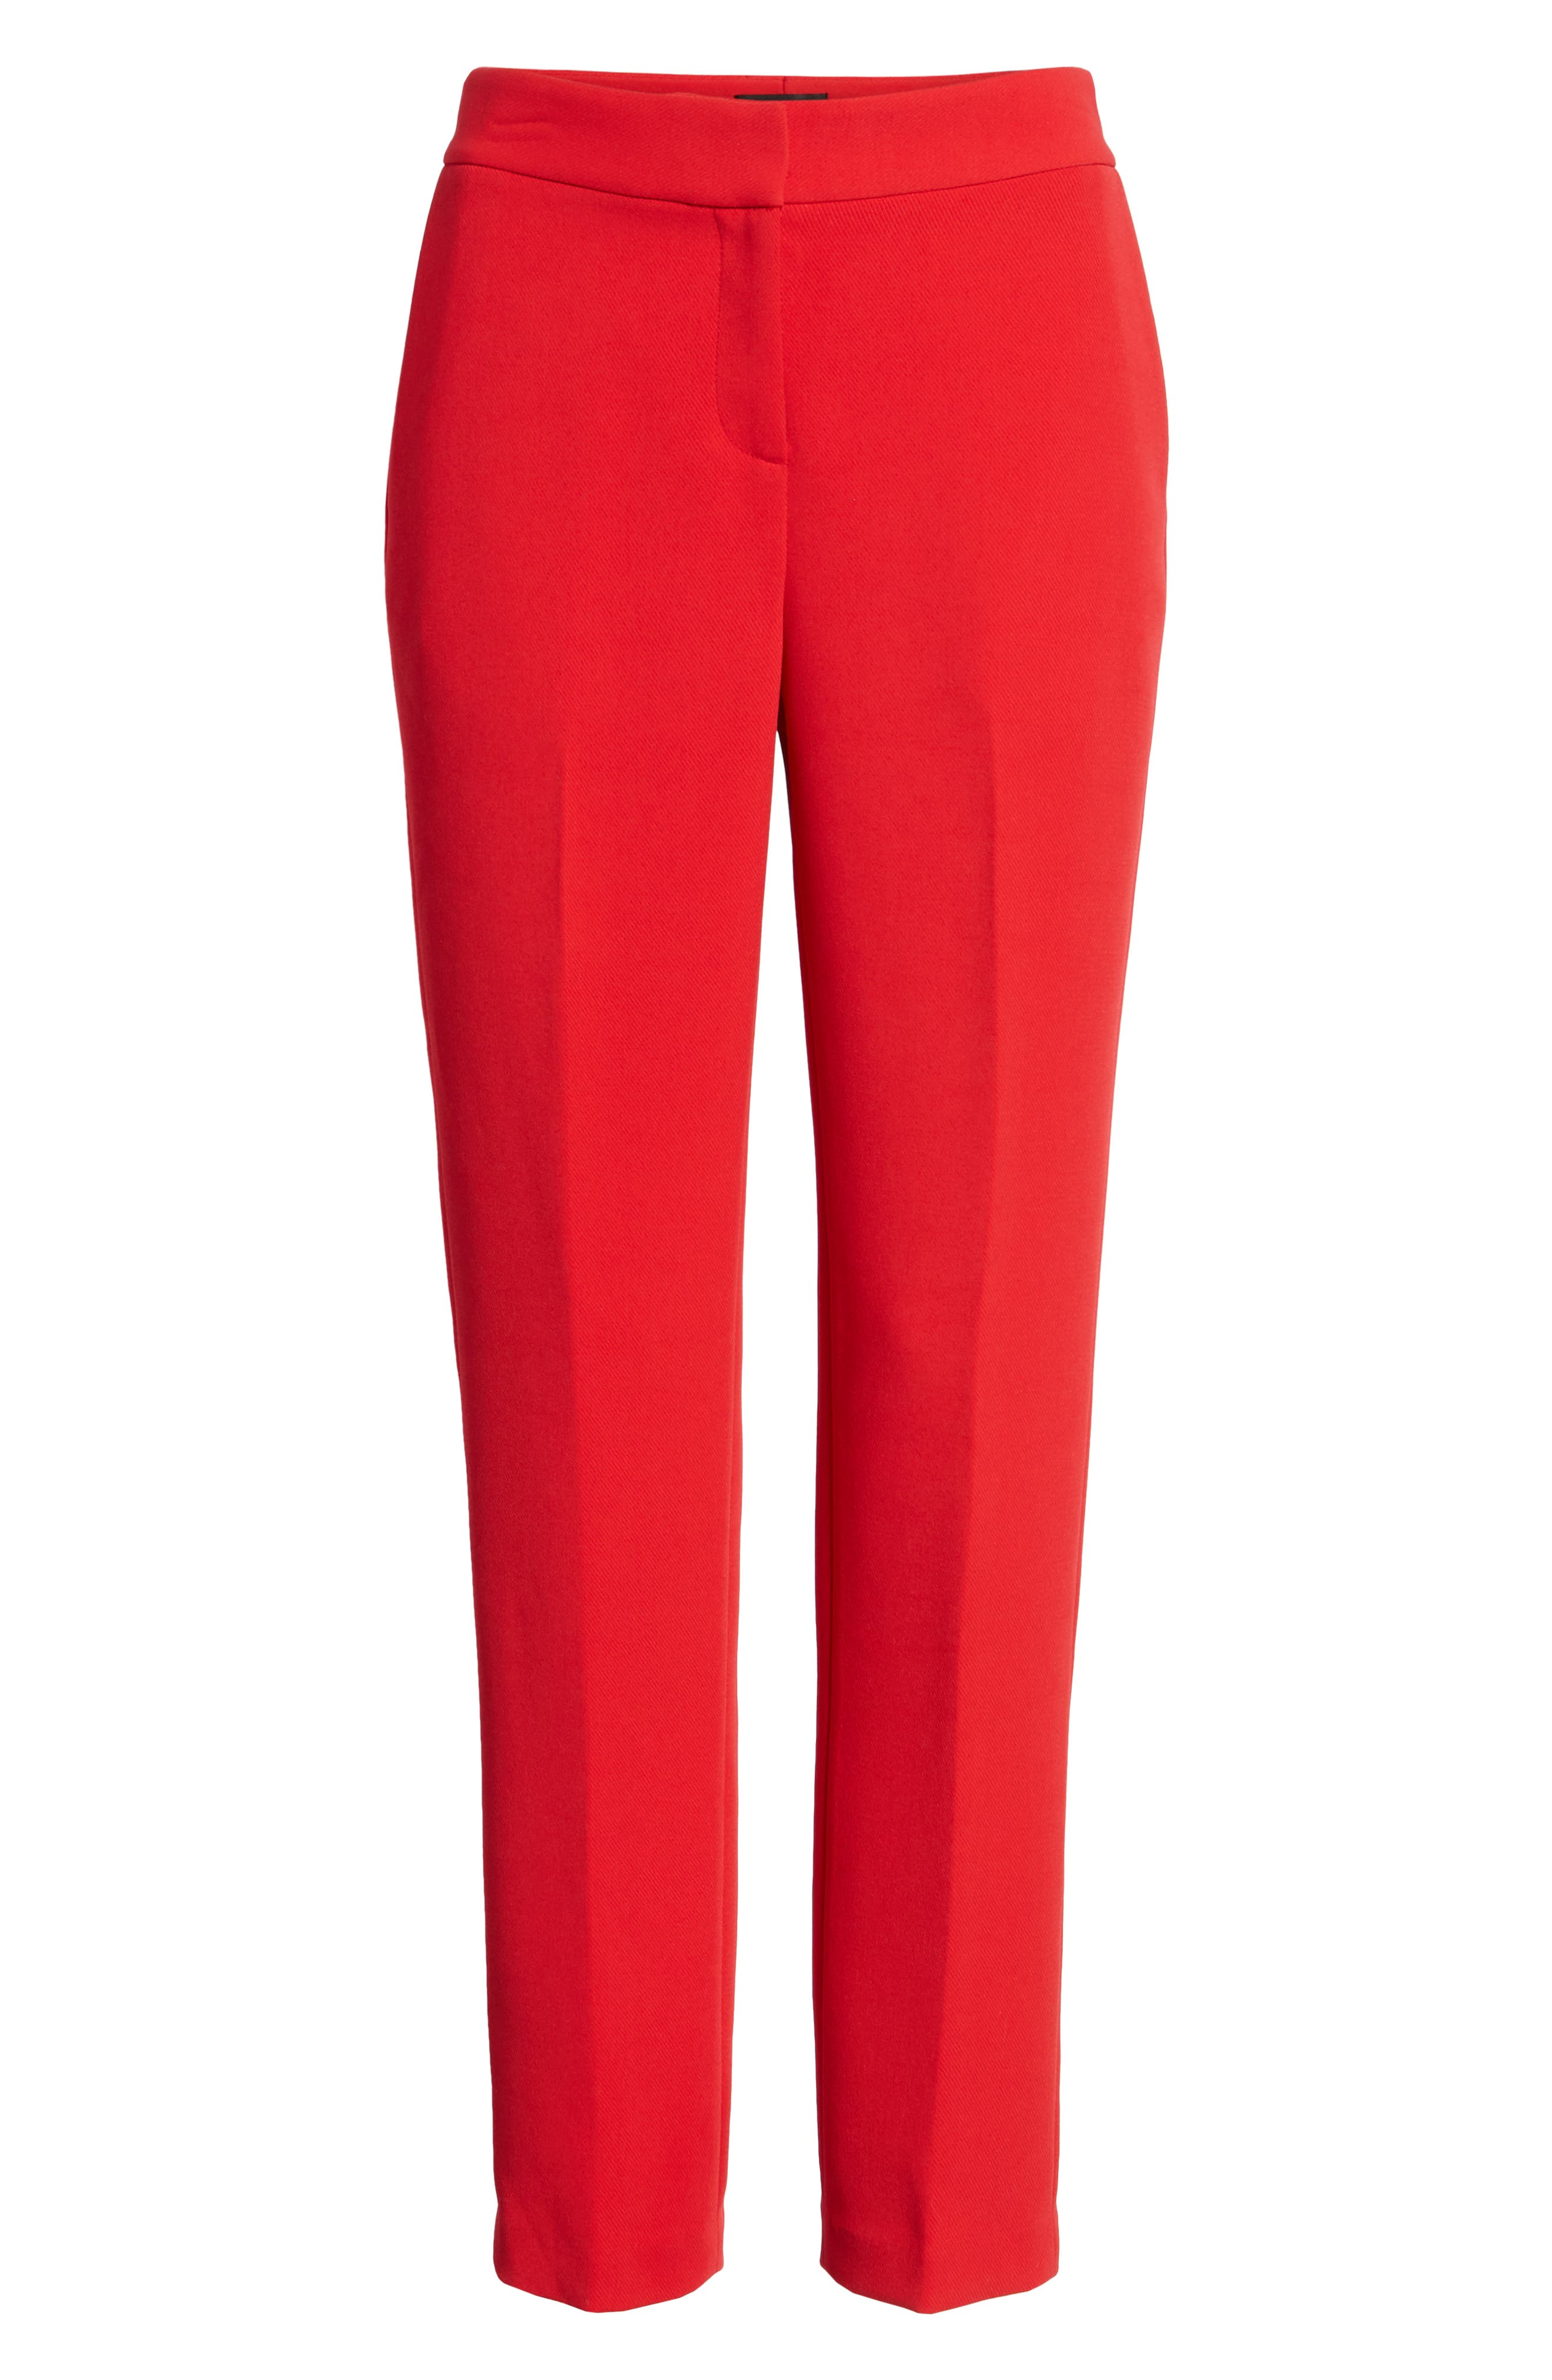 High Waist Straight Pants,                             Alternate thumbnail 6, color,                             Red Chinoise